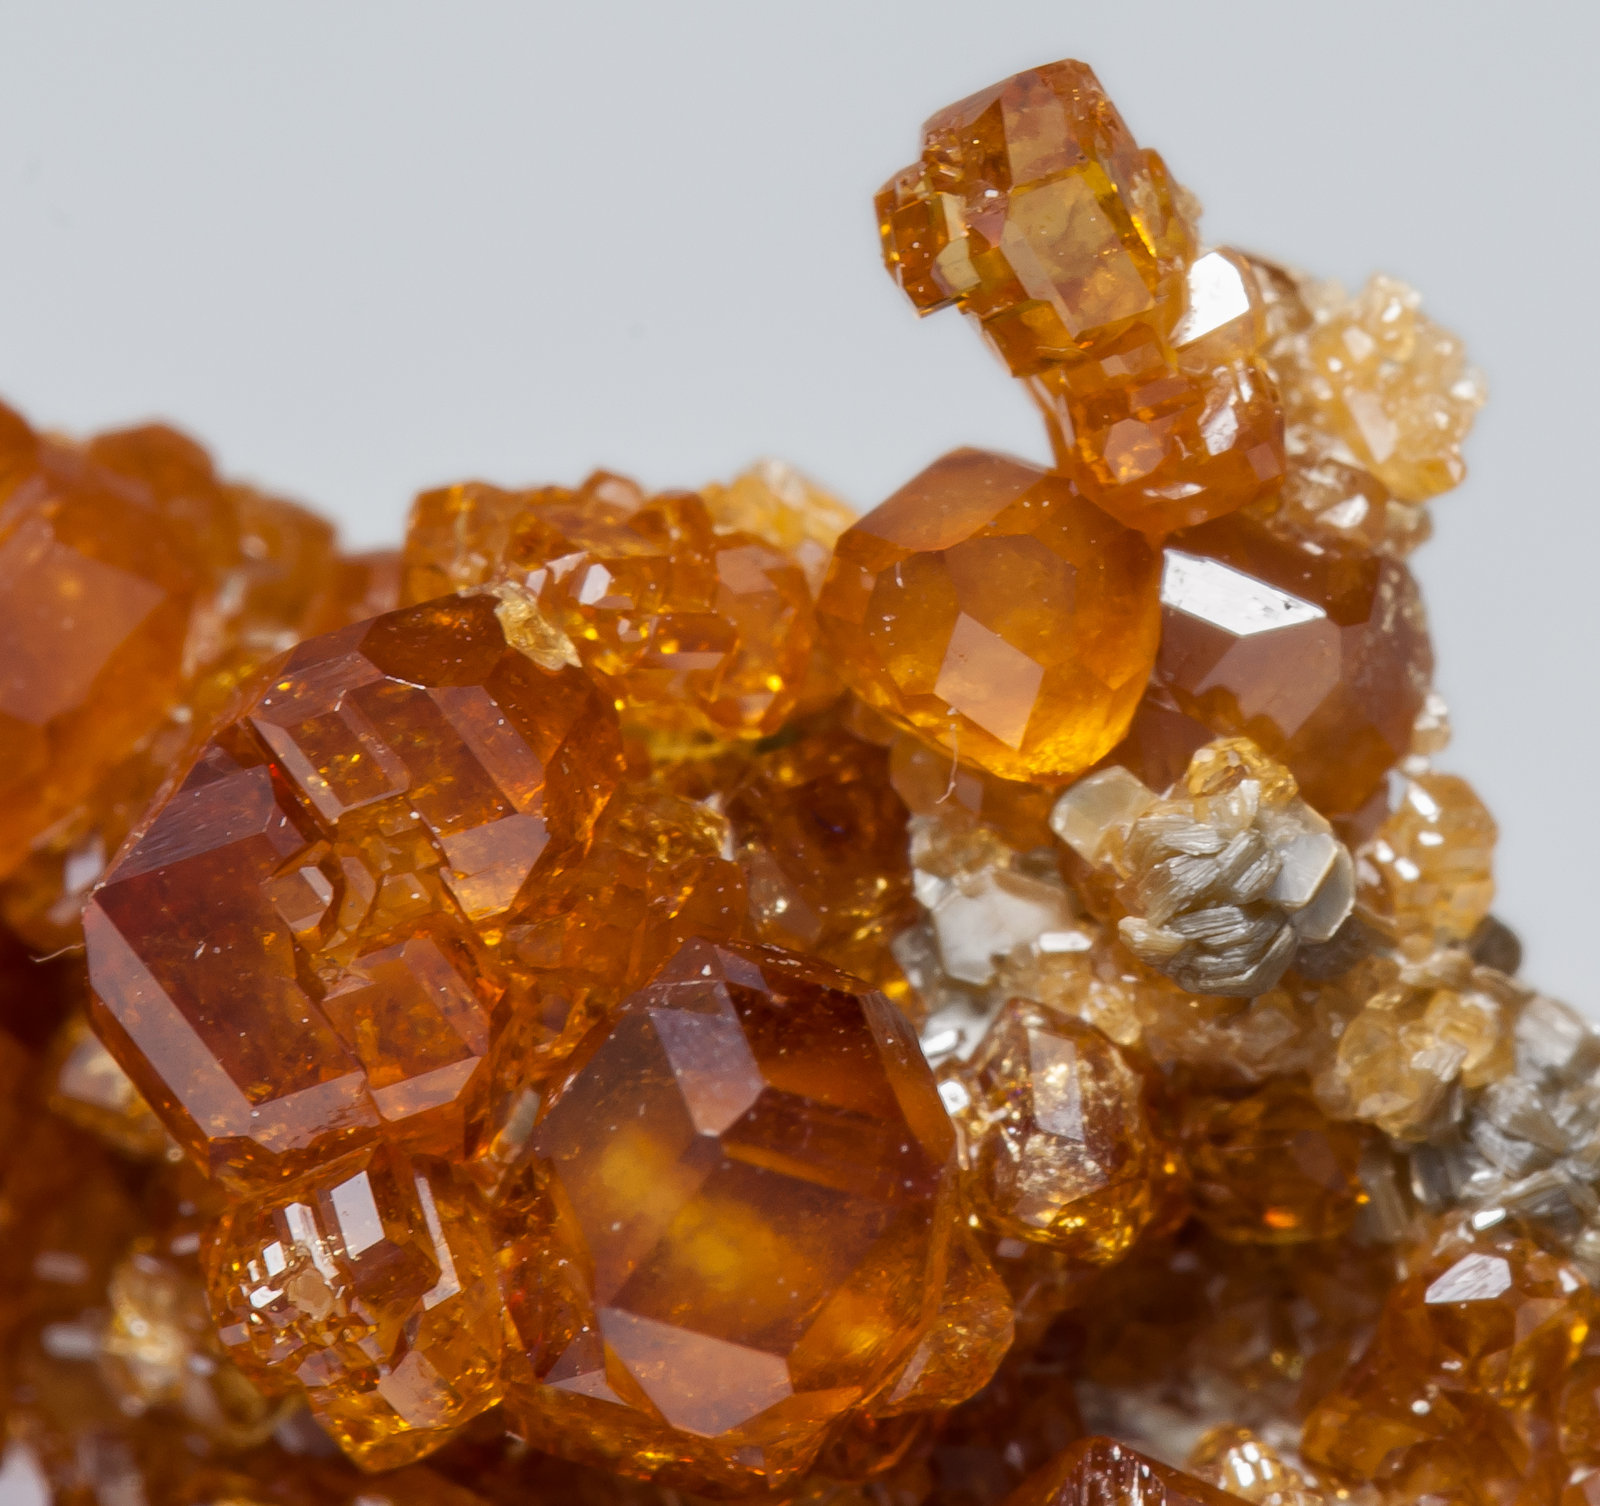 specimens/s_imagesAA8/Grossular_hessonite-MV89AA8d1.jpg